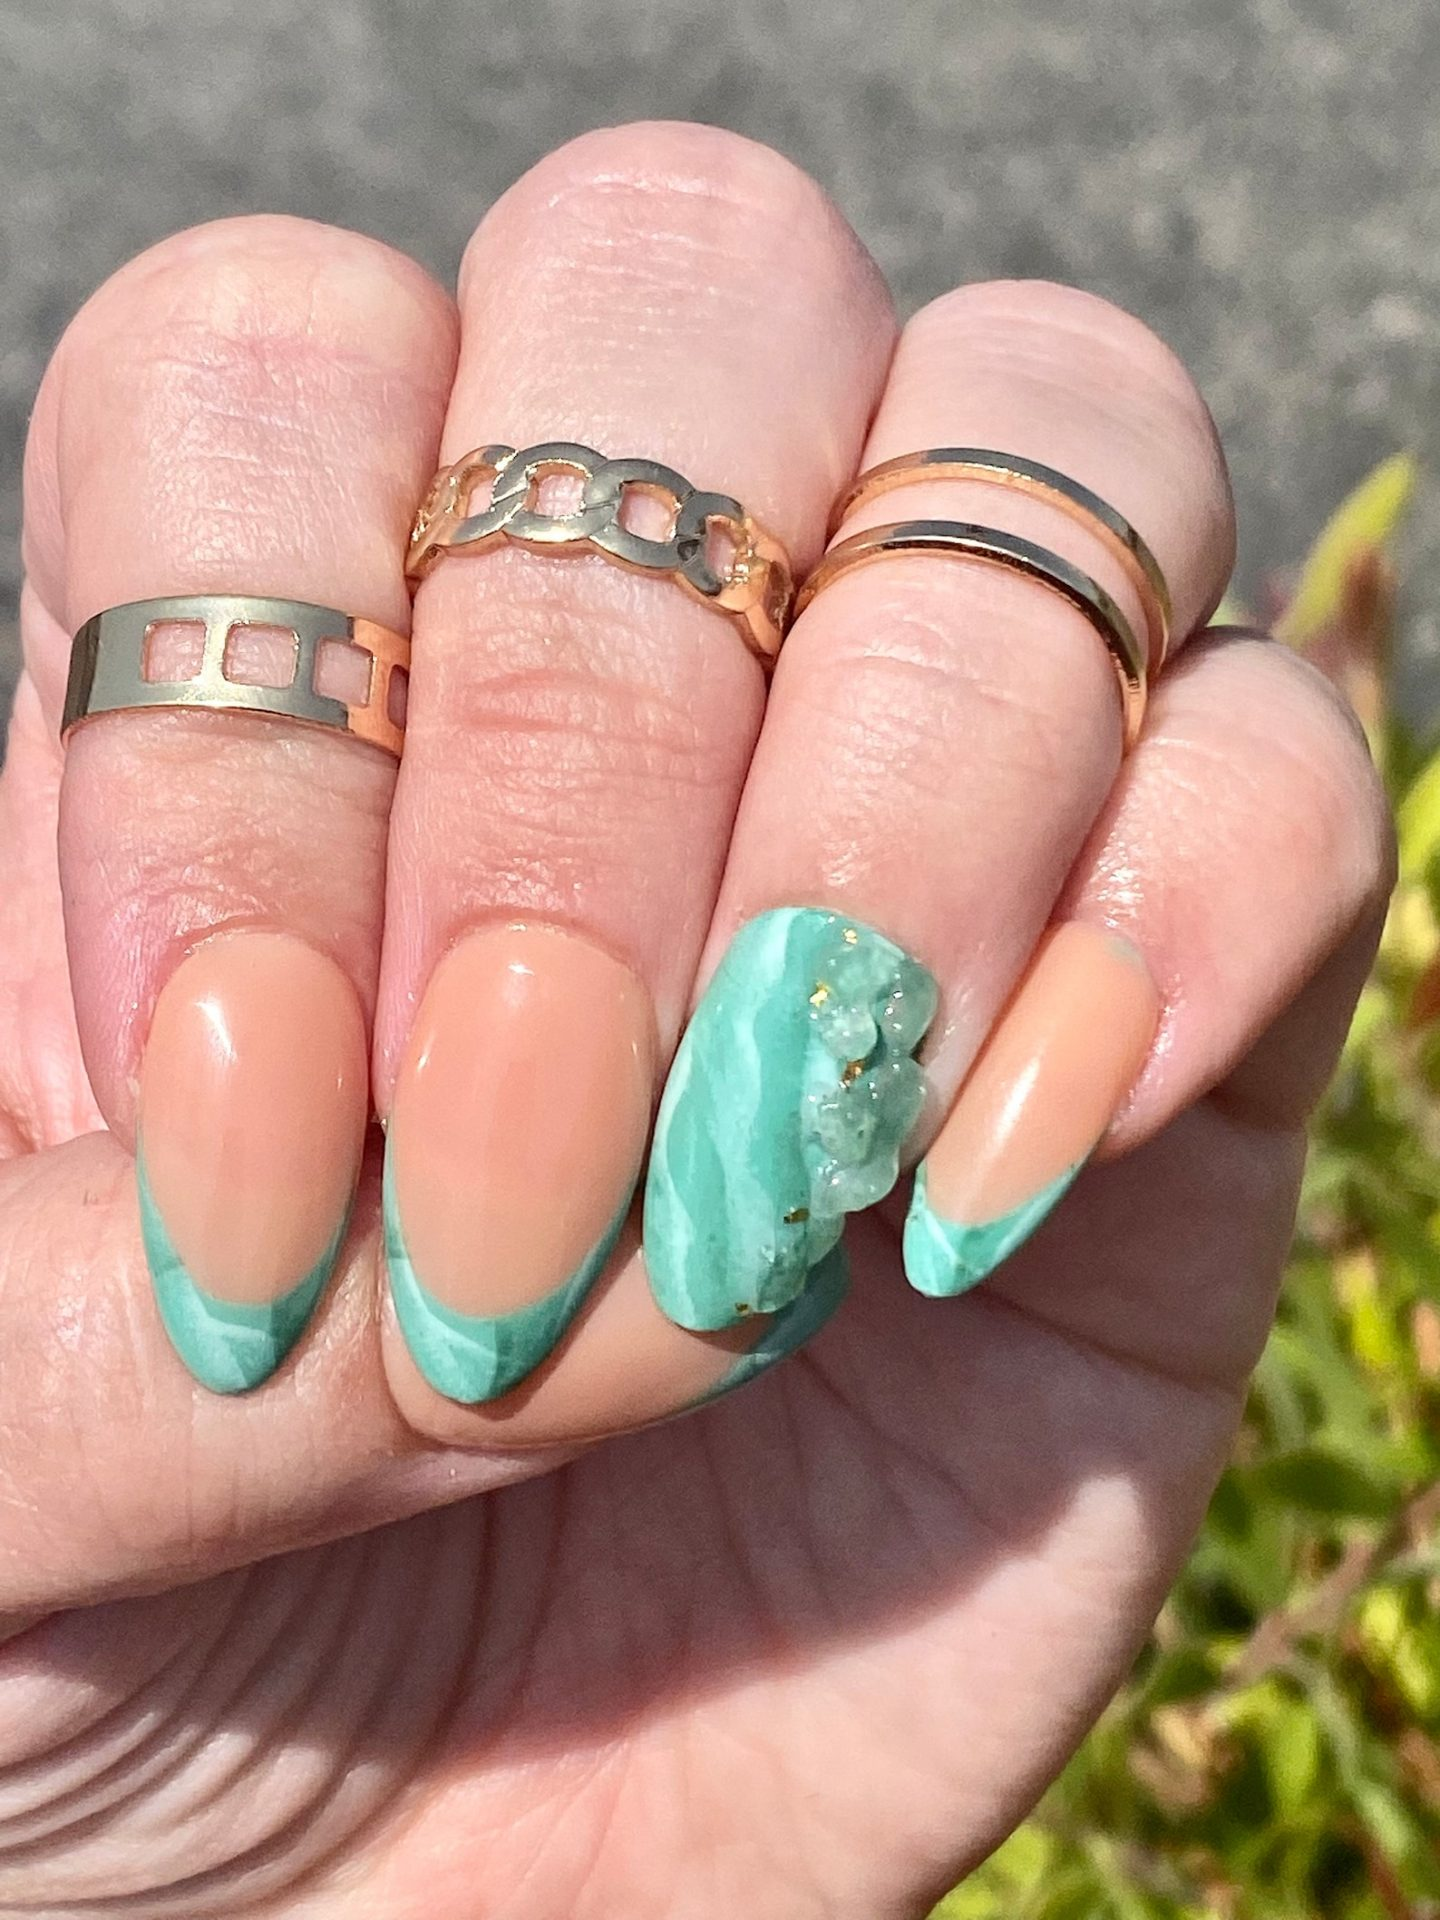 Cute turquoise French tip nails with marble nail art